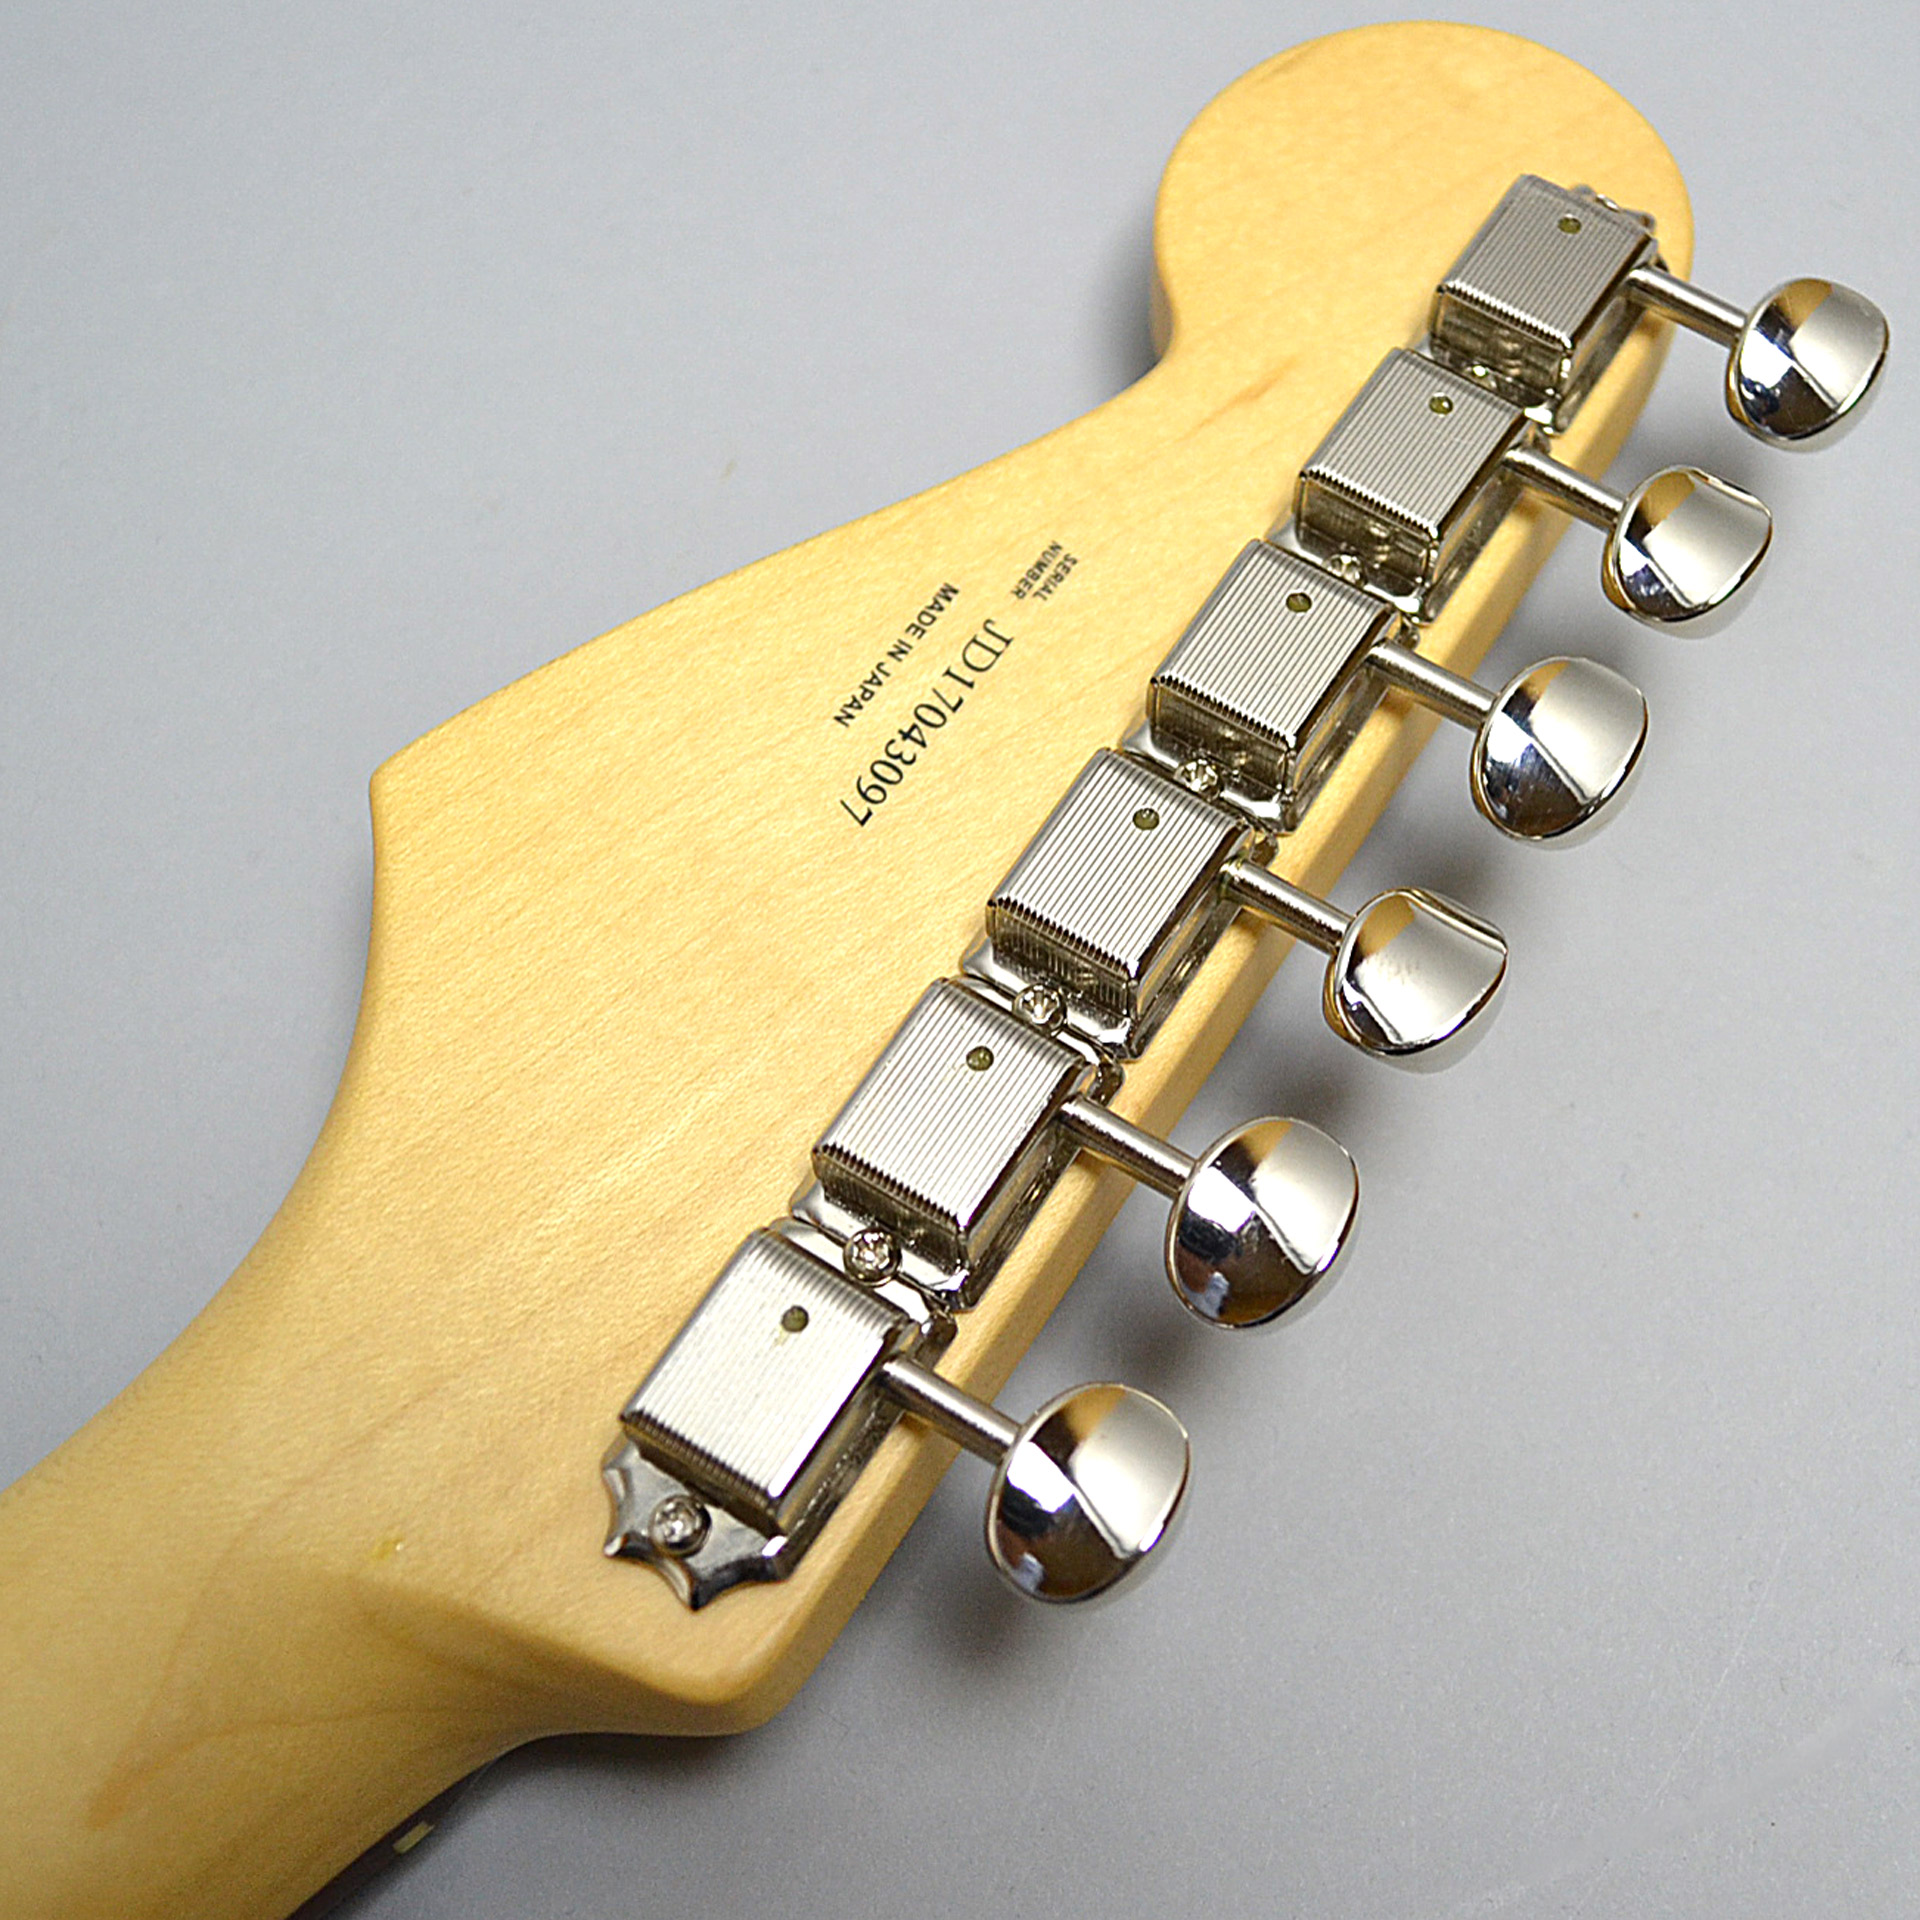 MADE IN JAPAN HYBRID 60S STRATOCASTERのヘッド裏-アップ画像